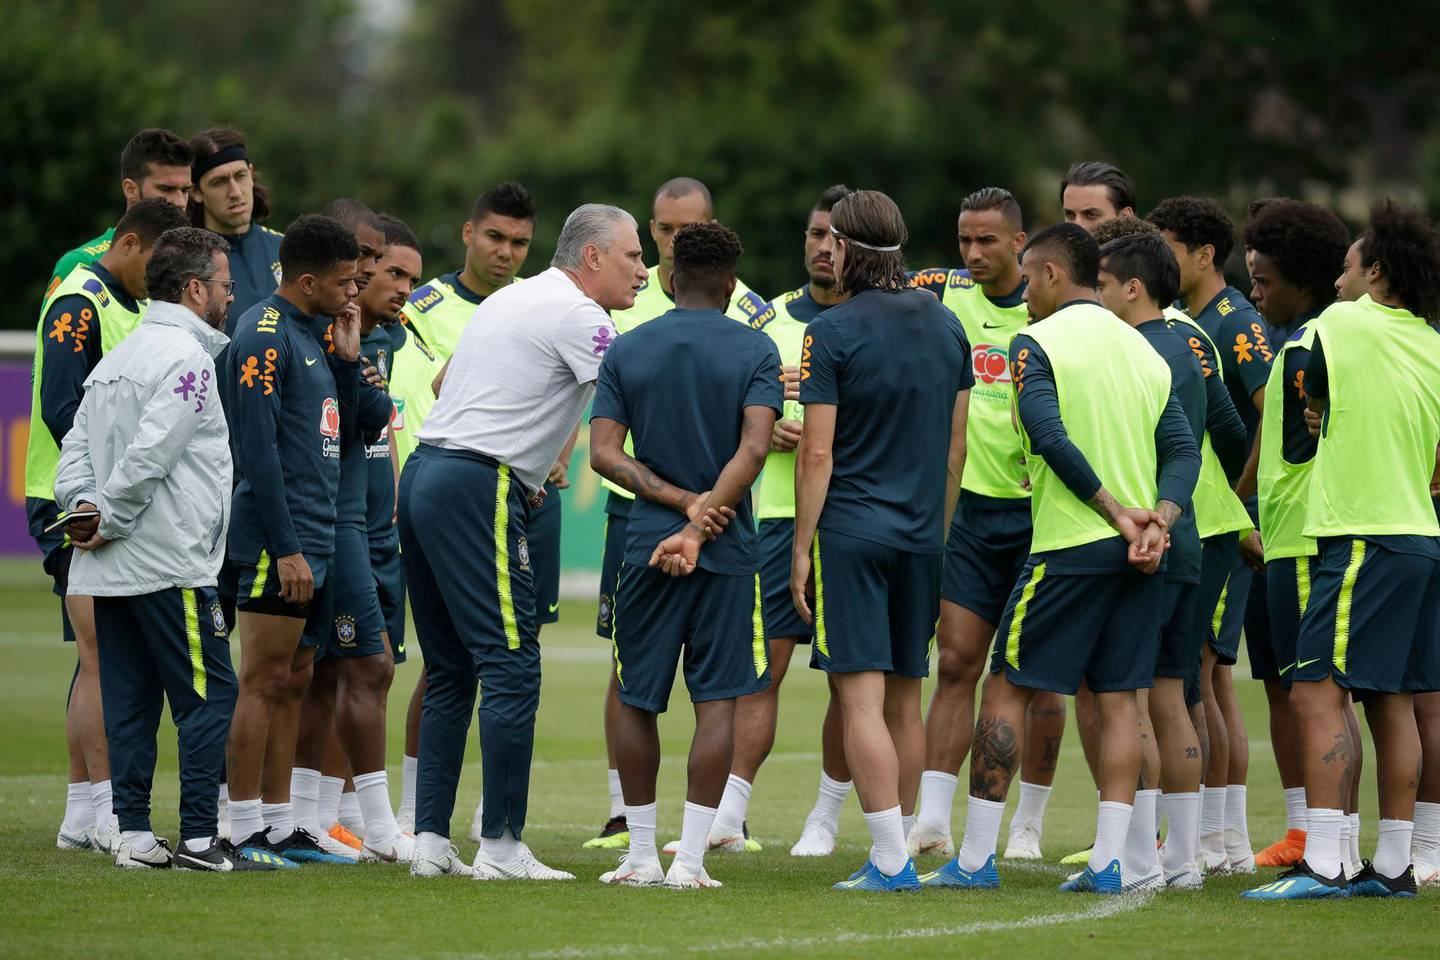 Brazil's head coach Tite, center left, talks to his players during a national soccer squad training session at the training facilities of Tottenham Hotspur football club in Enfield, England, Thursday, June 7, 2018. (AP Photo/Matt Dunham)